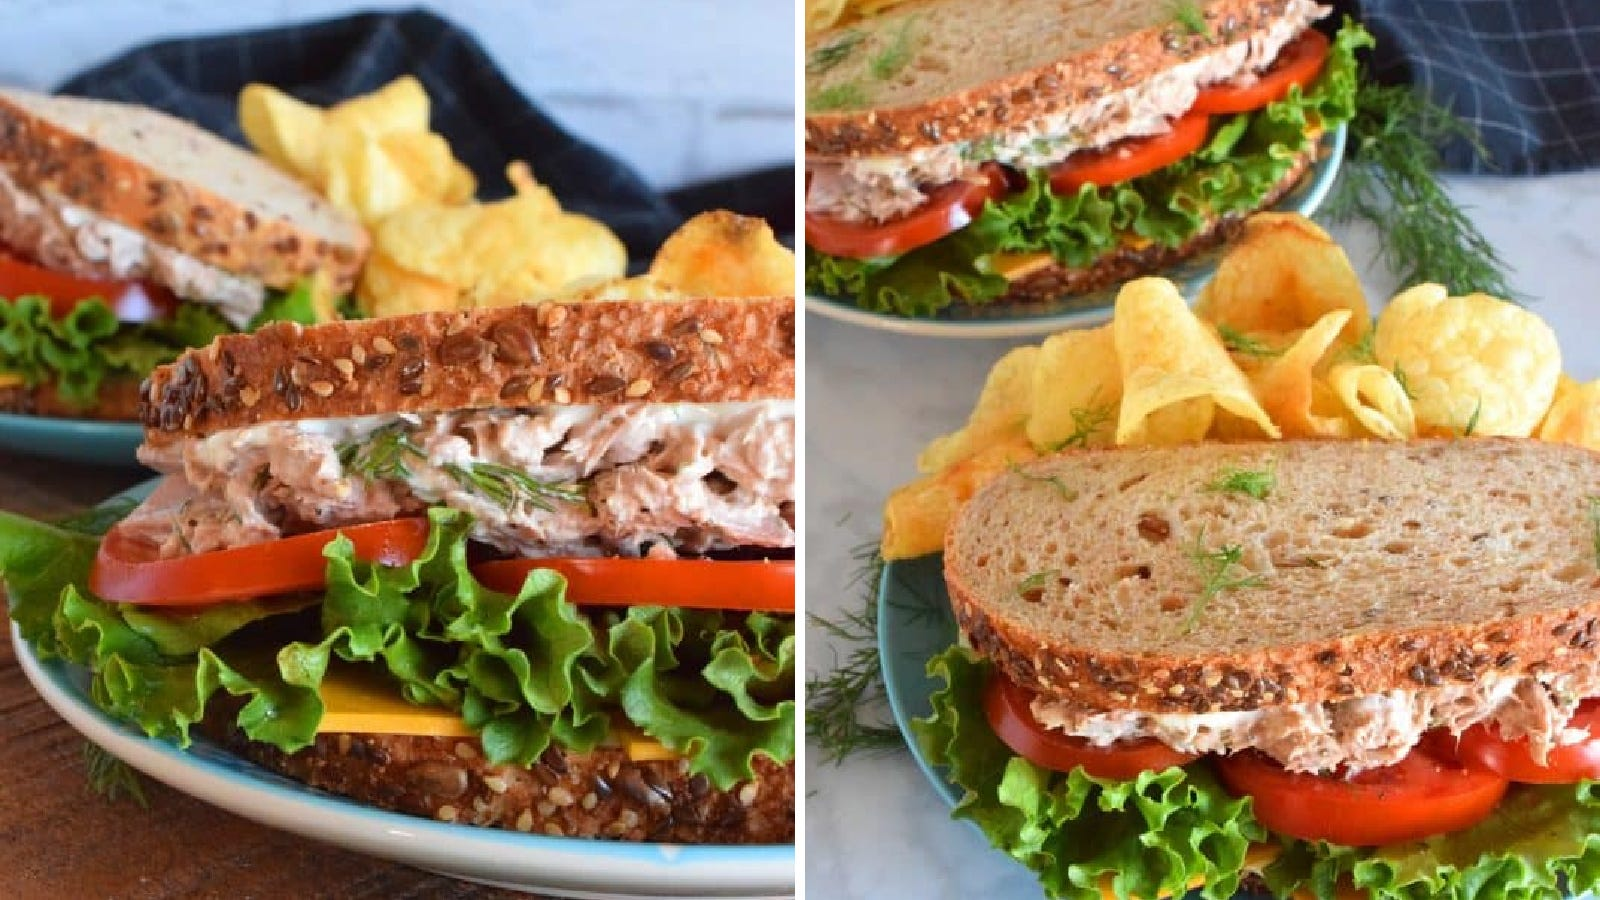 Two images displaying a dill pickled infused tuna sandwich filled with lettuce tomato and cheese with a side of chips.